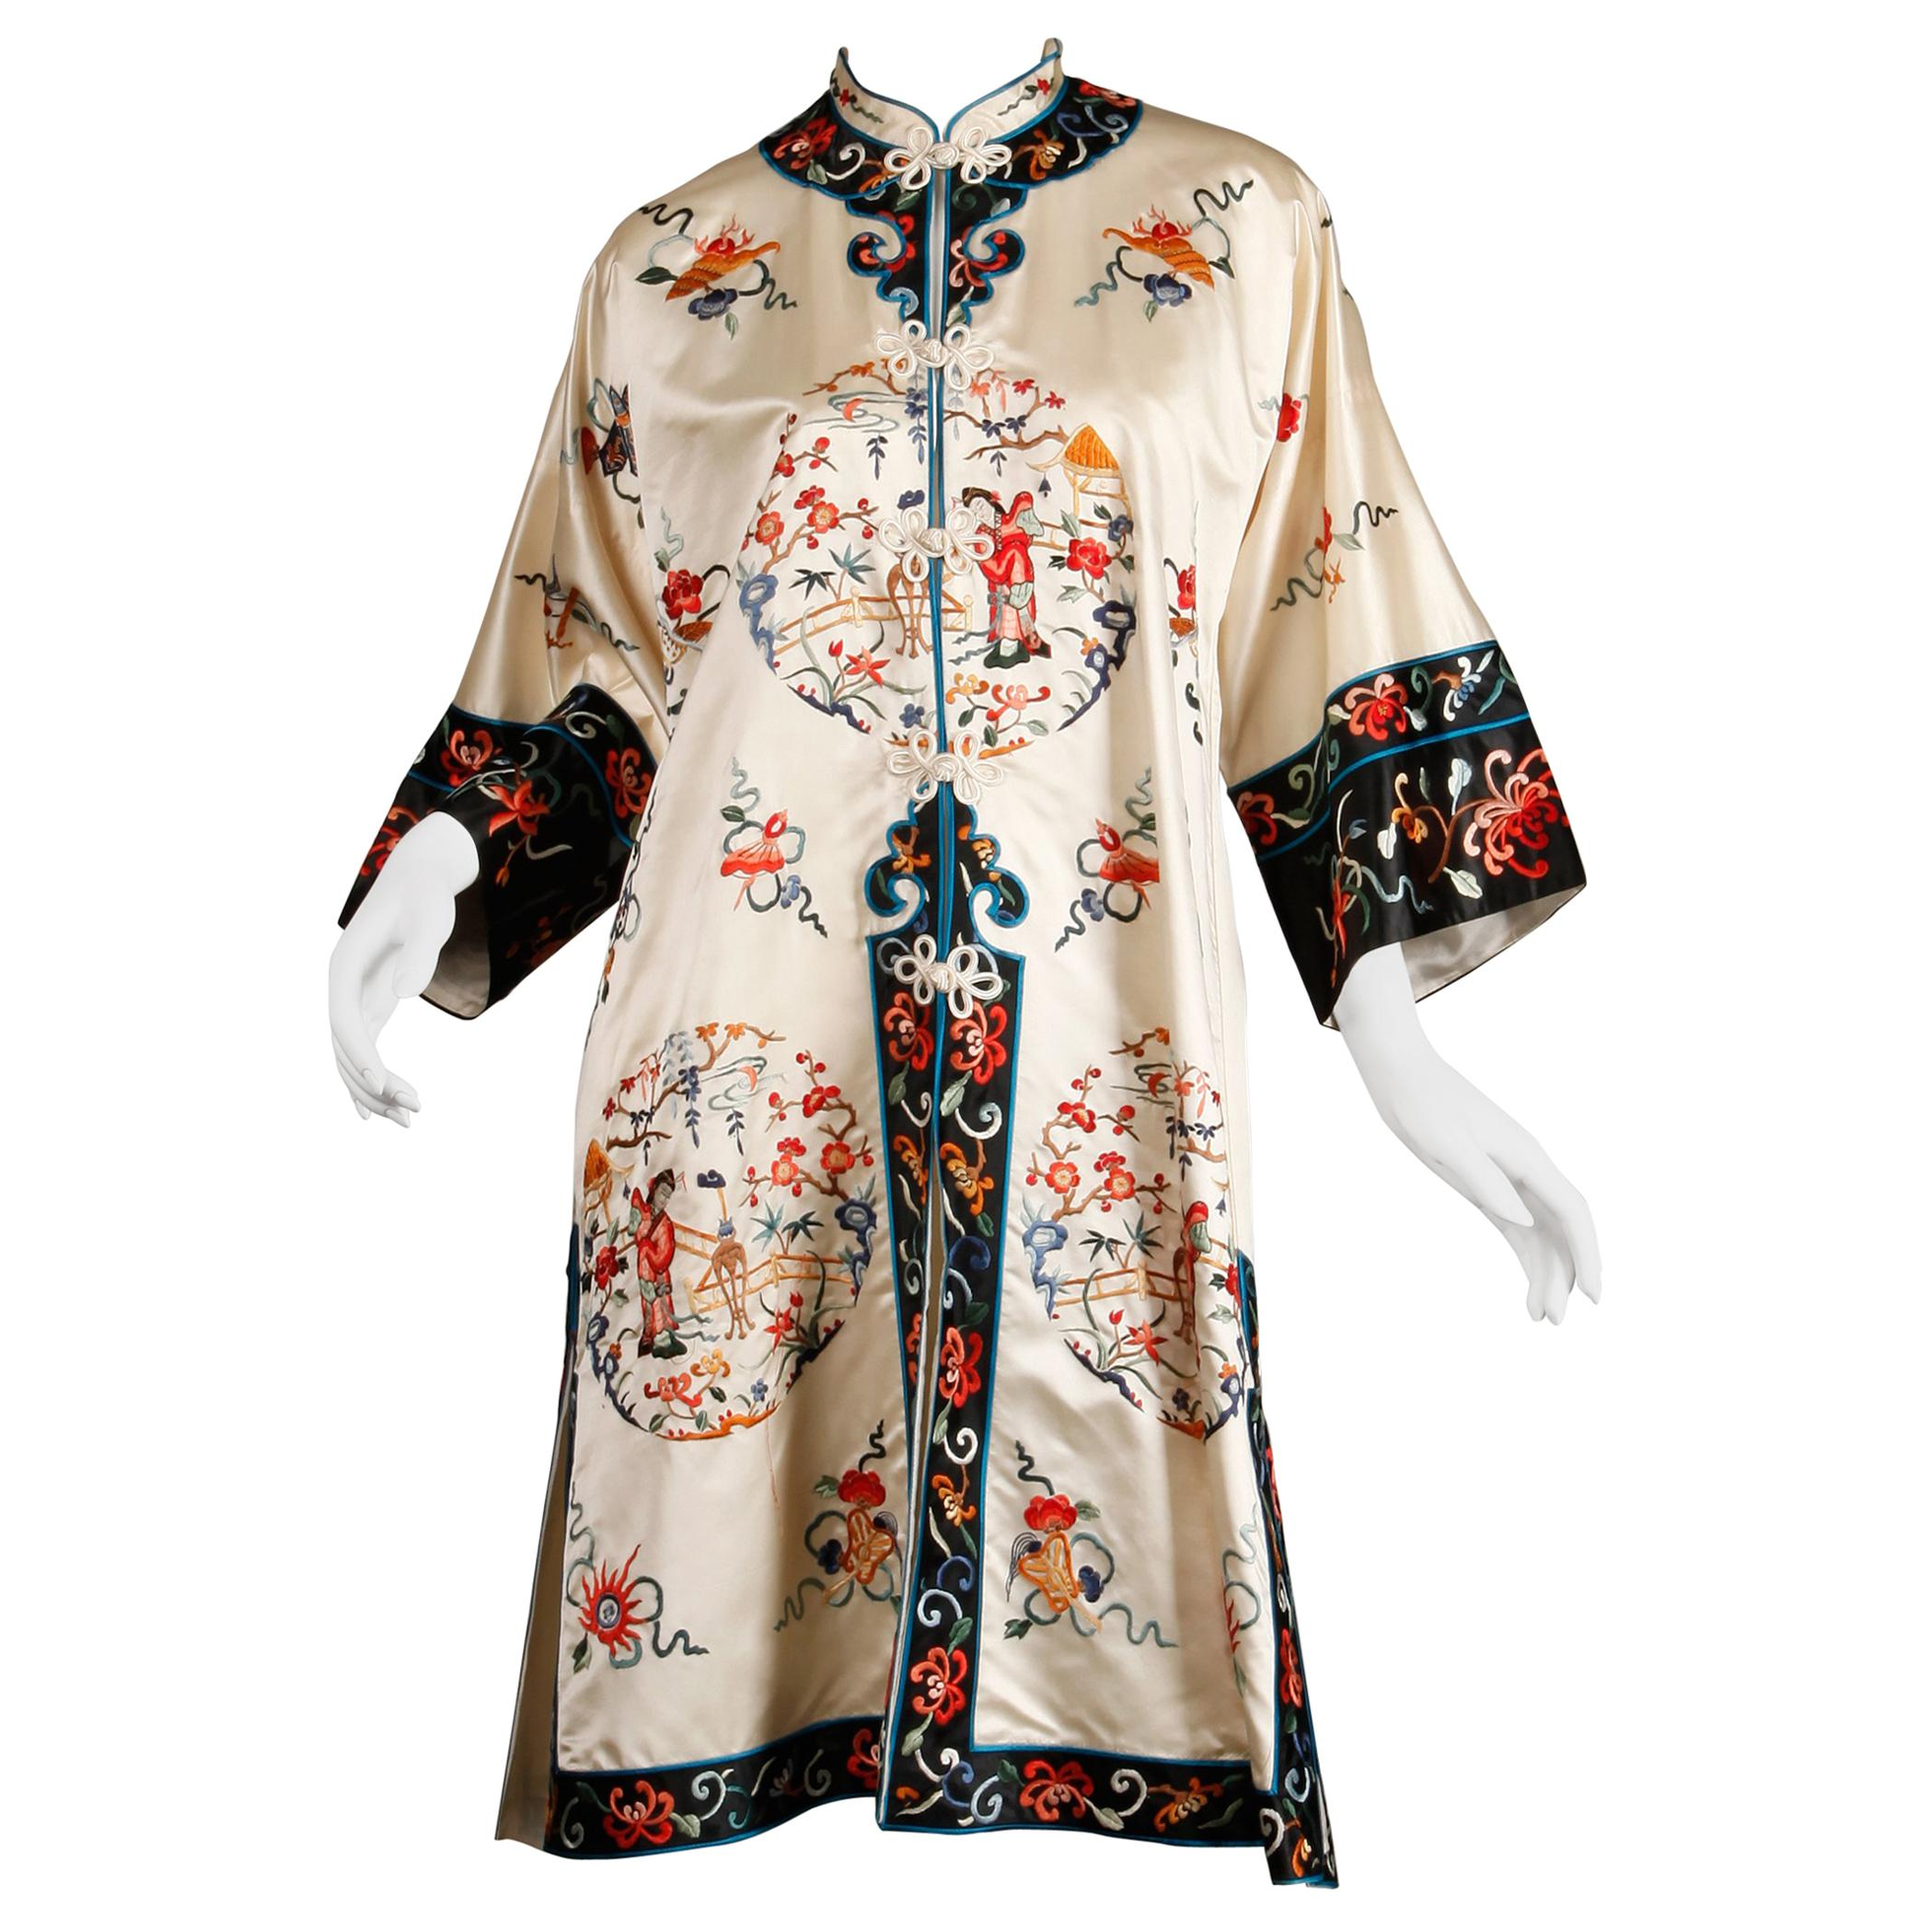 Pristine 20th C. Vintage Chinese White Embroidered Figures + Flowers Silk Robe